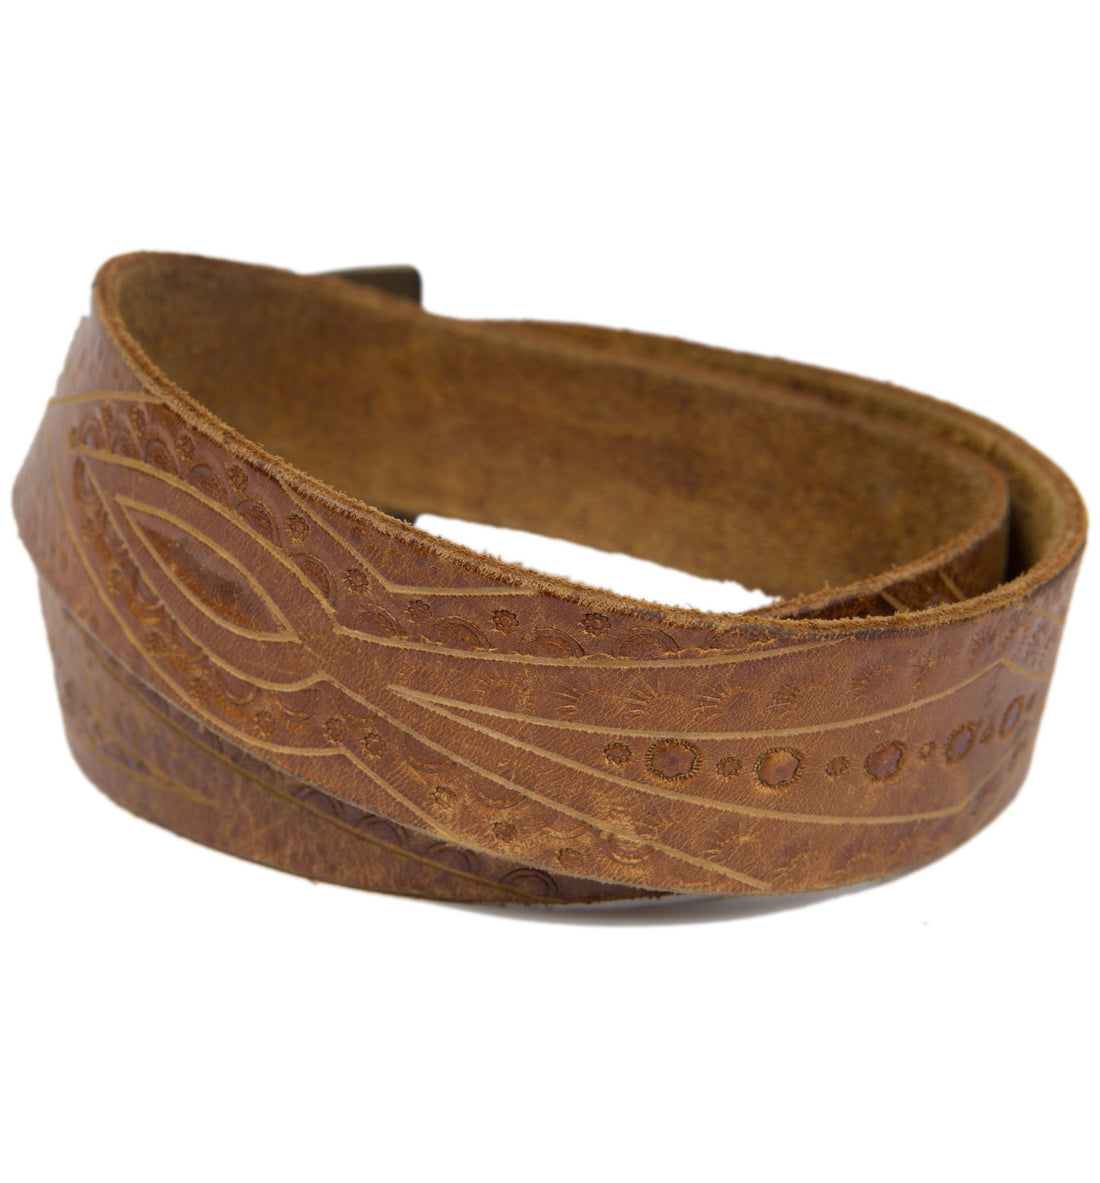 Vintage Leather Embossed Tooled Belt - Vintage: Women's - Iron and Resin